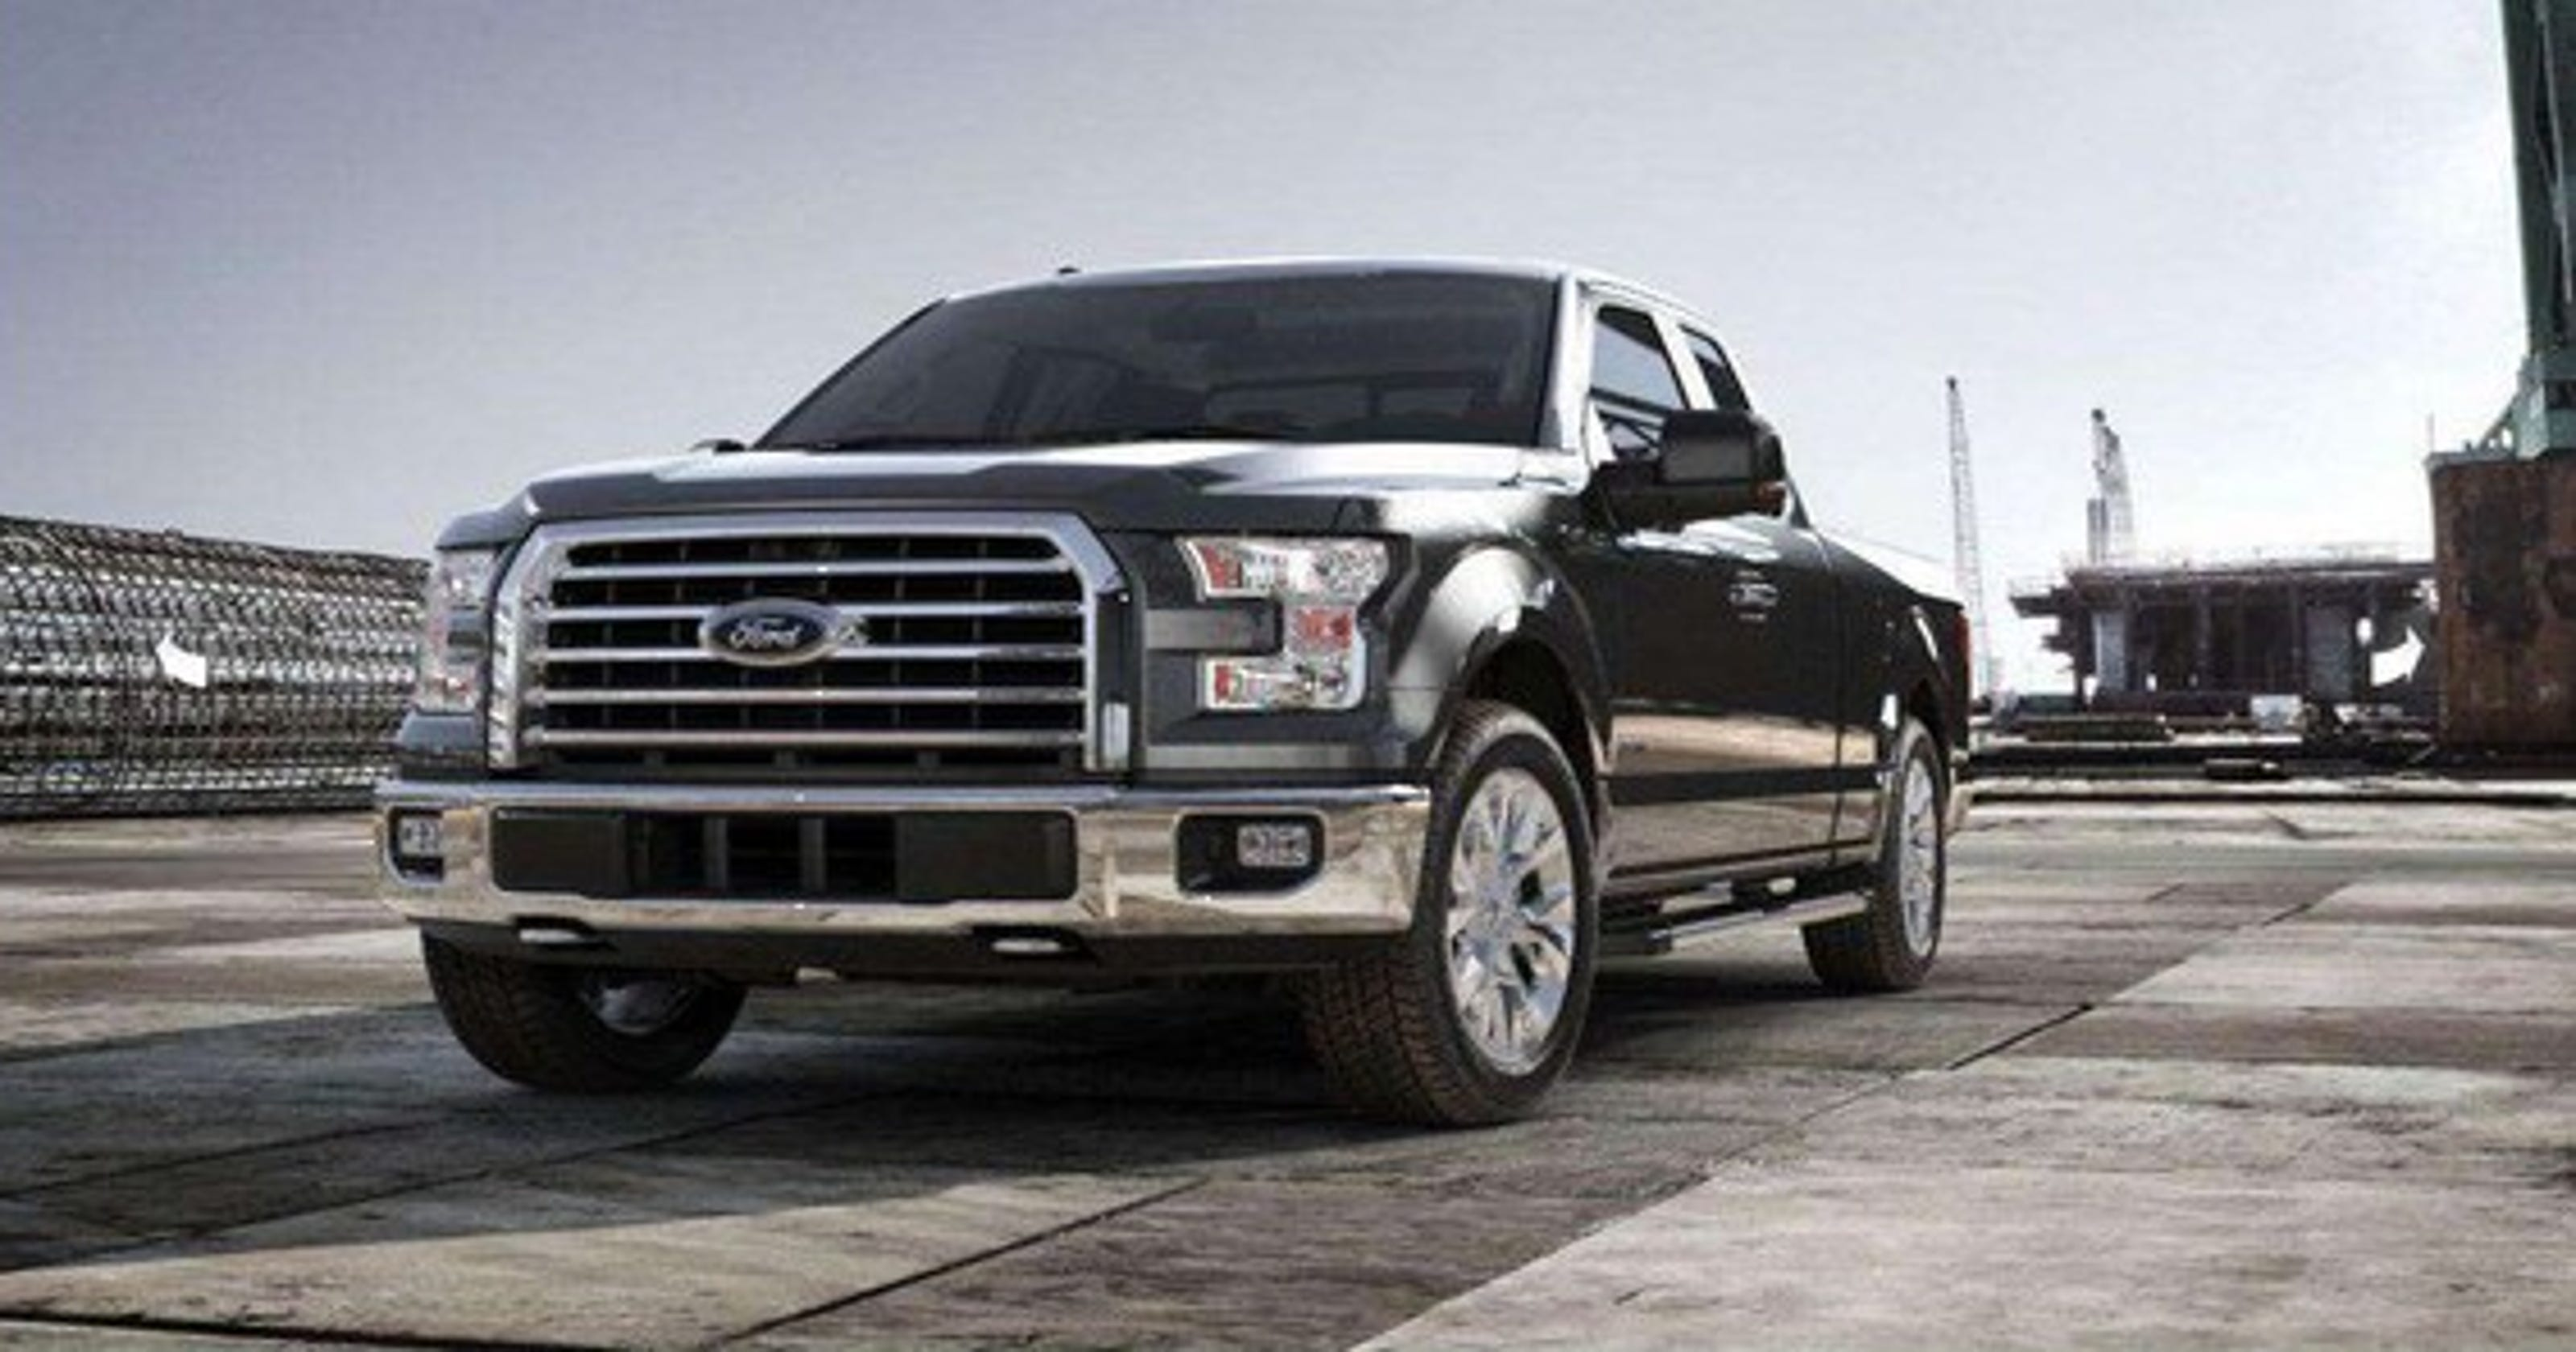 Ford Recalls 2 Million F 150 Pickup Trucks To Fix Seat Belt Defect Causing Fires